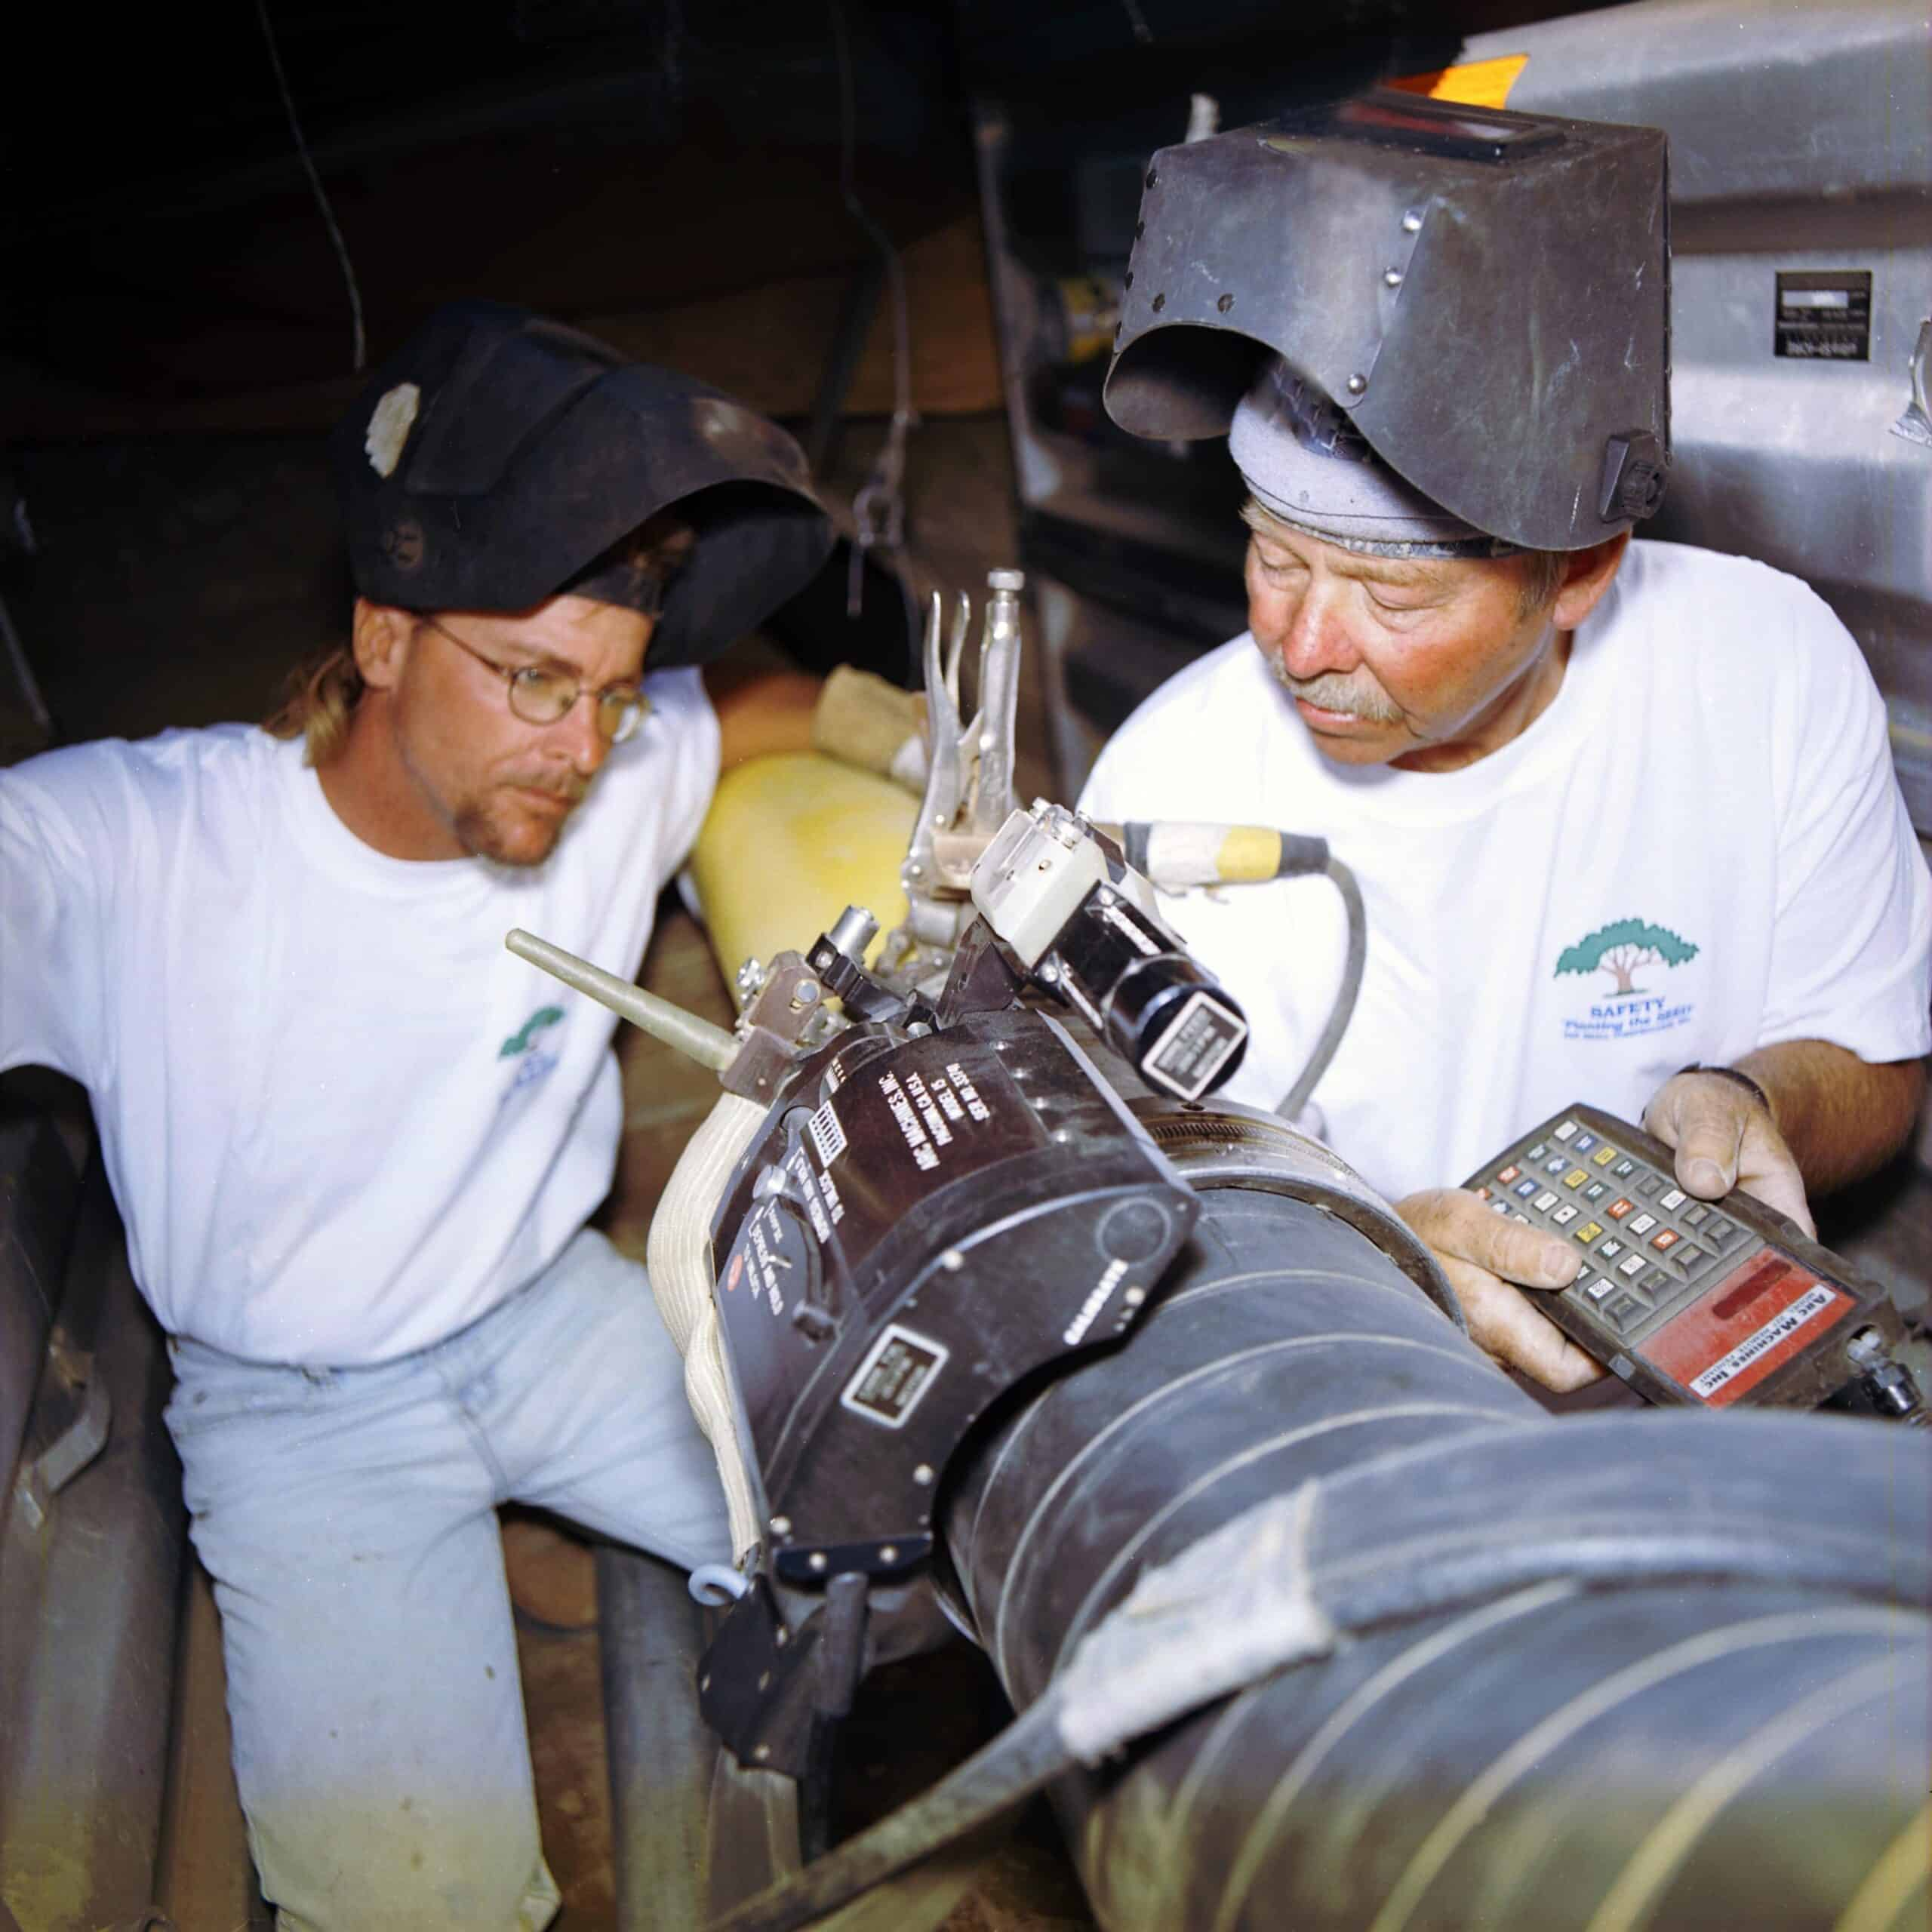 Remote welding control units being used to adjust orbital welding while in progress.